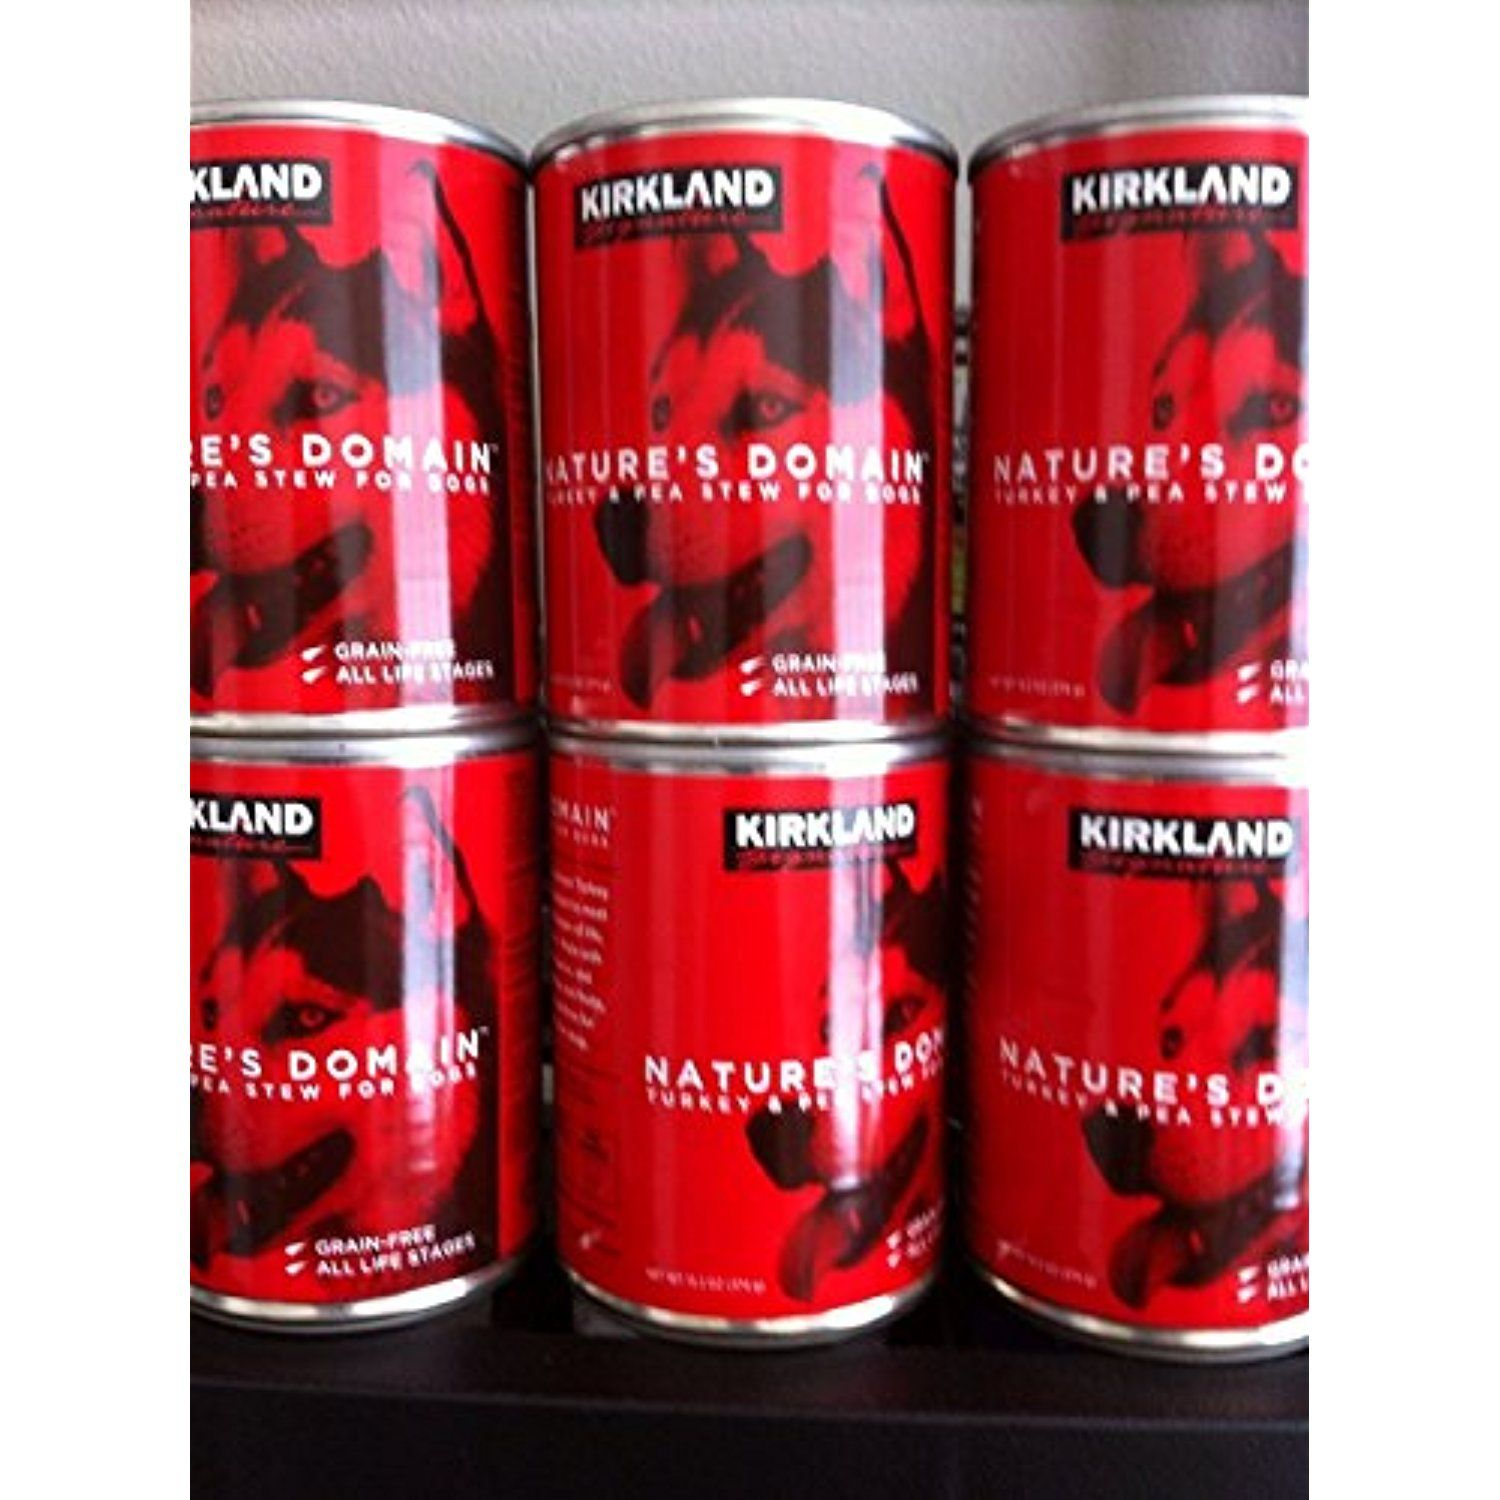 24 (13.2 Oz Each) Cans Nature's Domain Kirkland Turkey and